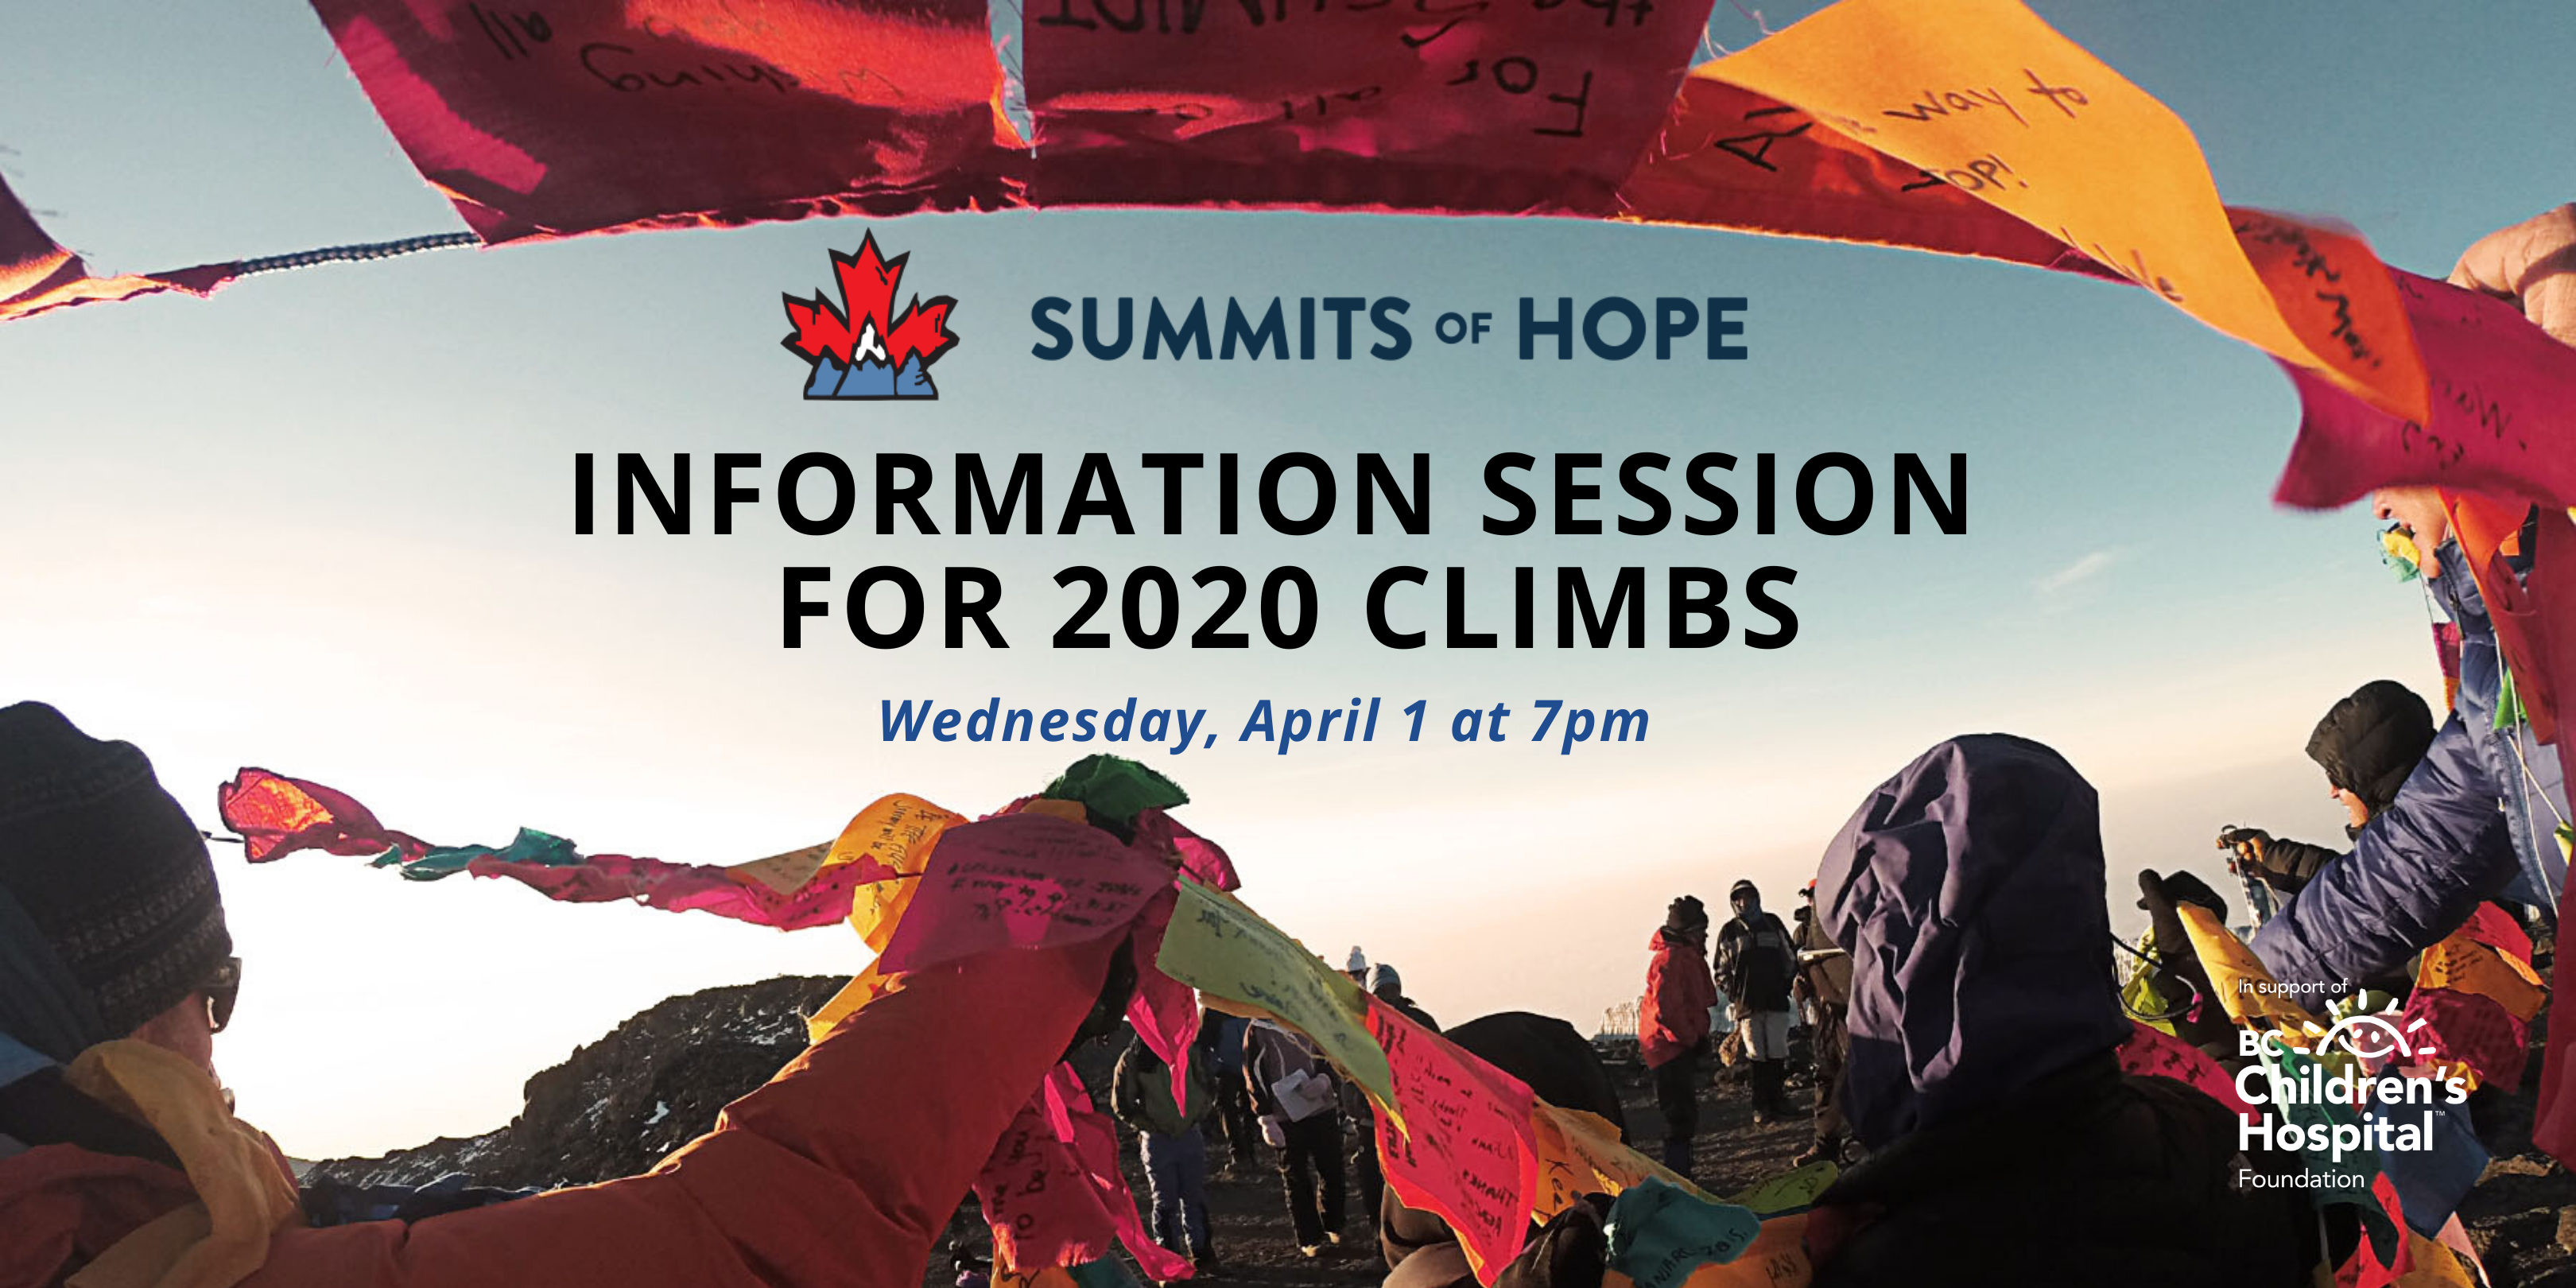 Summits of Hope 2020 Information Session